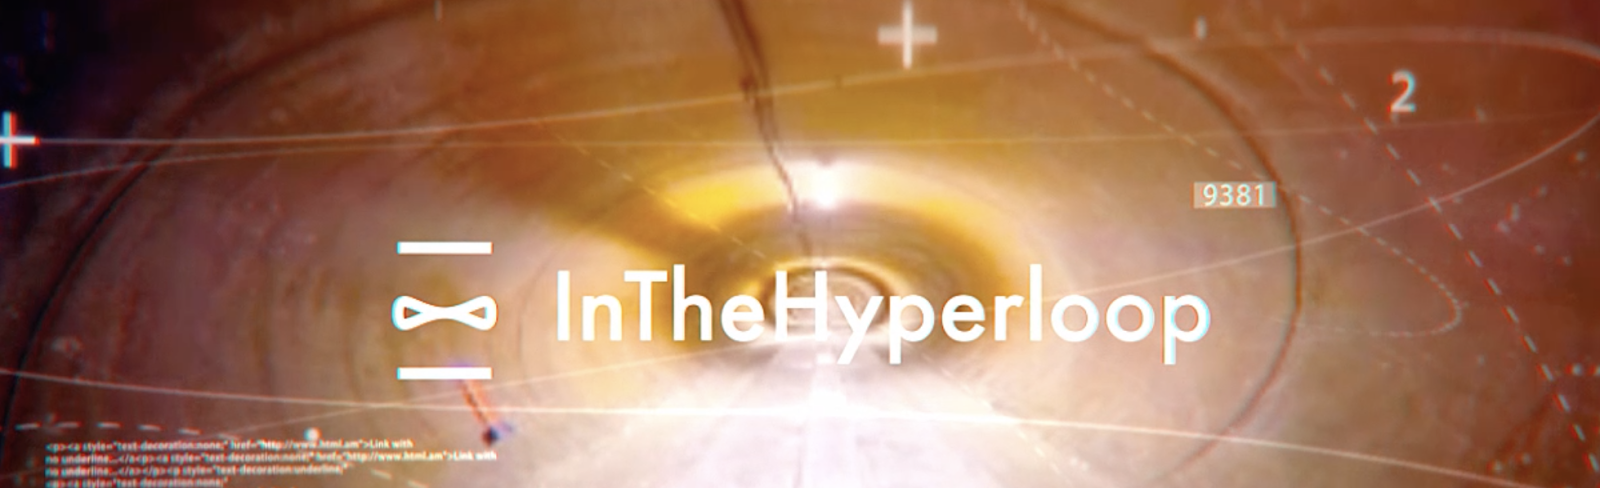 InTheHyperloop